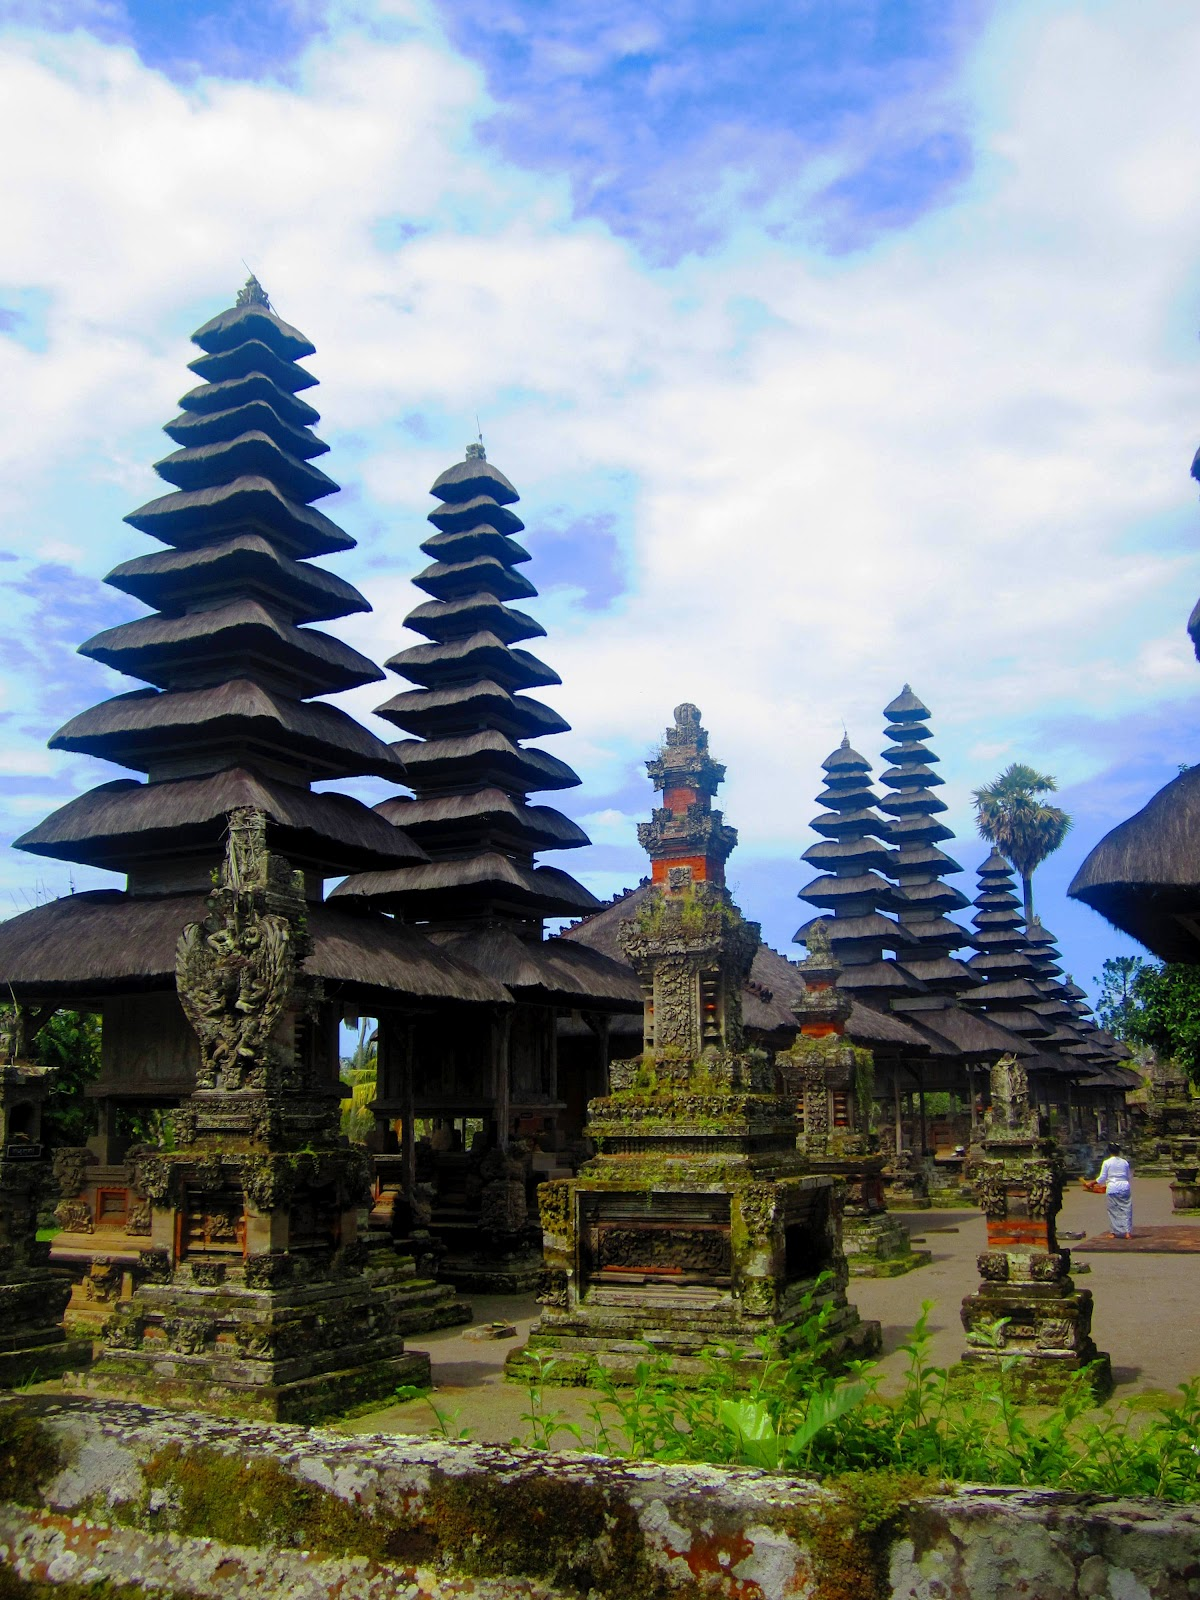 Best Bali Tour Experience Bali Temples So Many